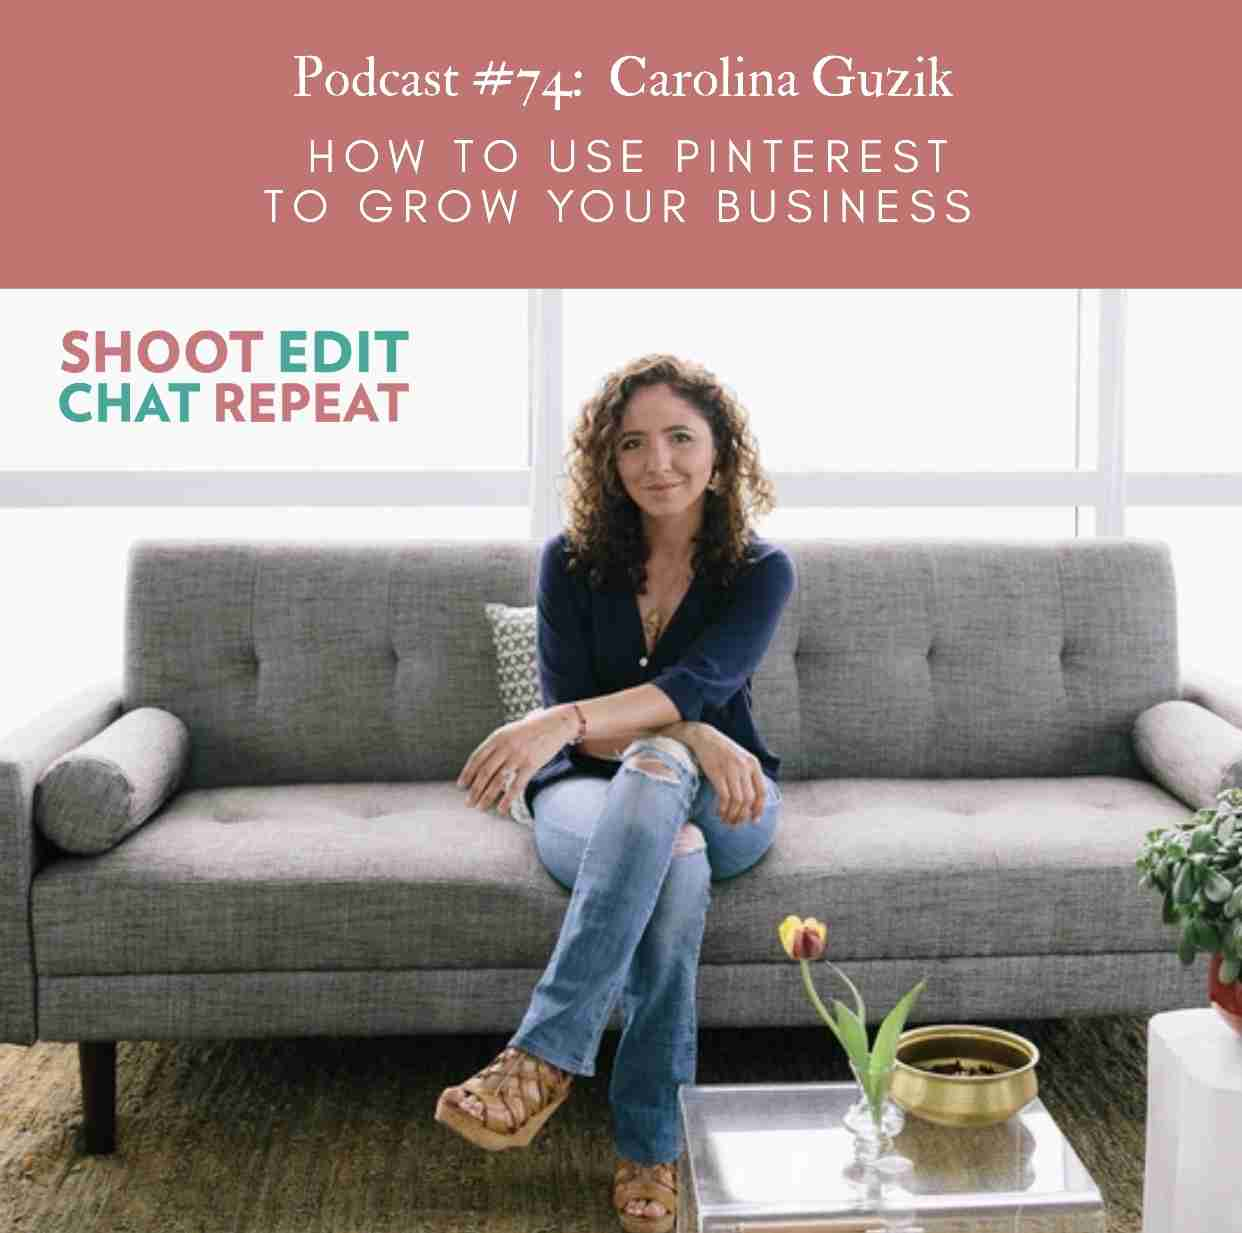 #74:  How to use Pinterest to grow your photography business with Carolina Guzik